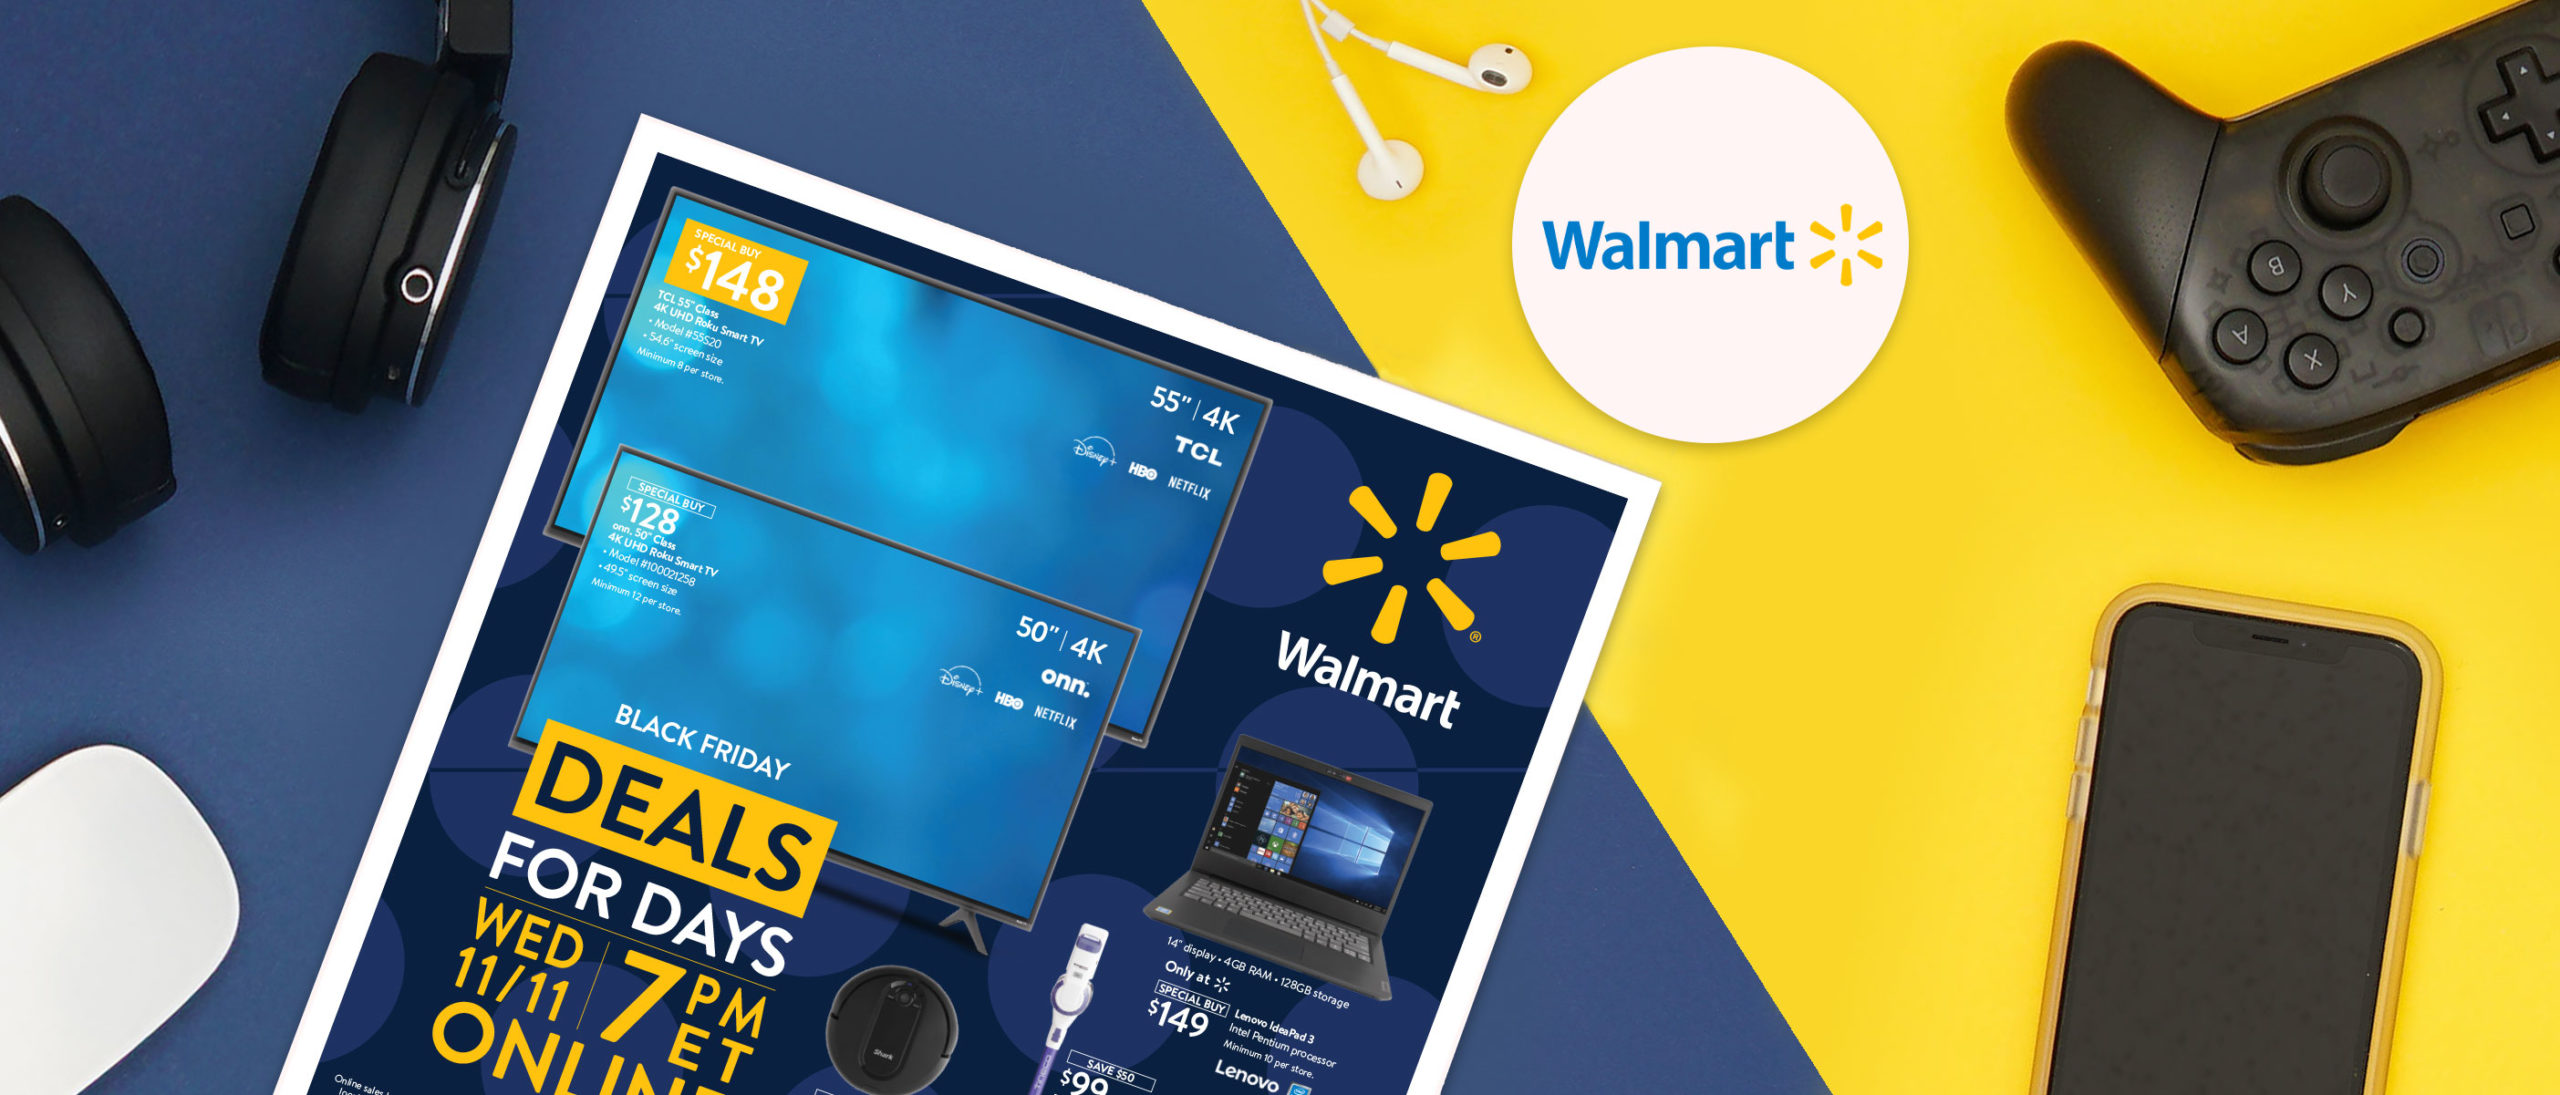 Walmart flyer on blue and yellow tabletop surrounded by electronics.